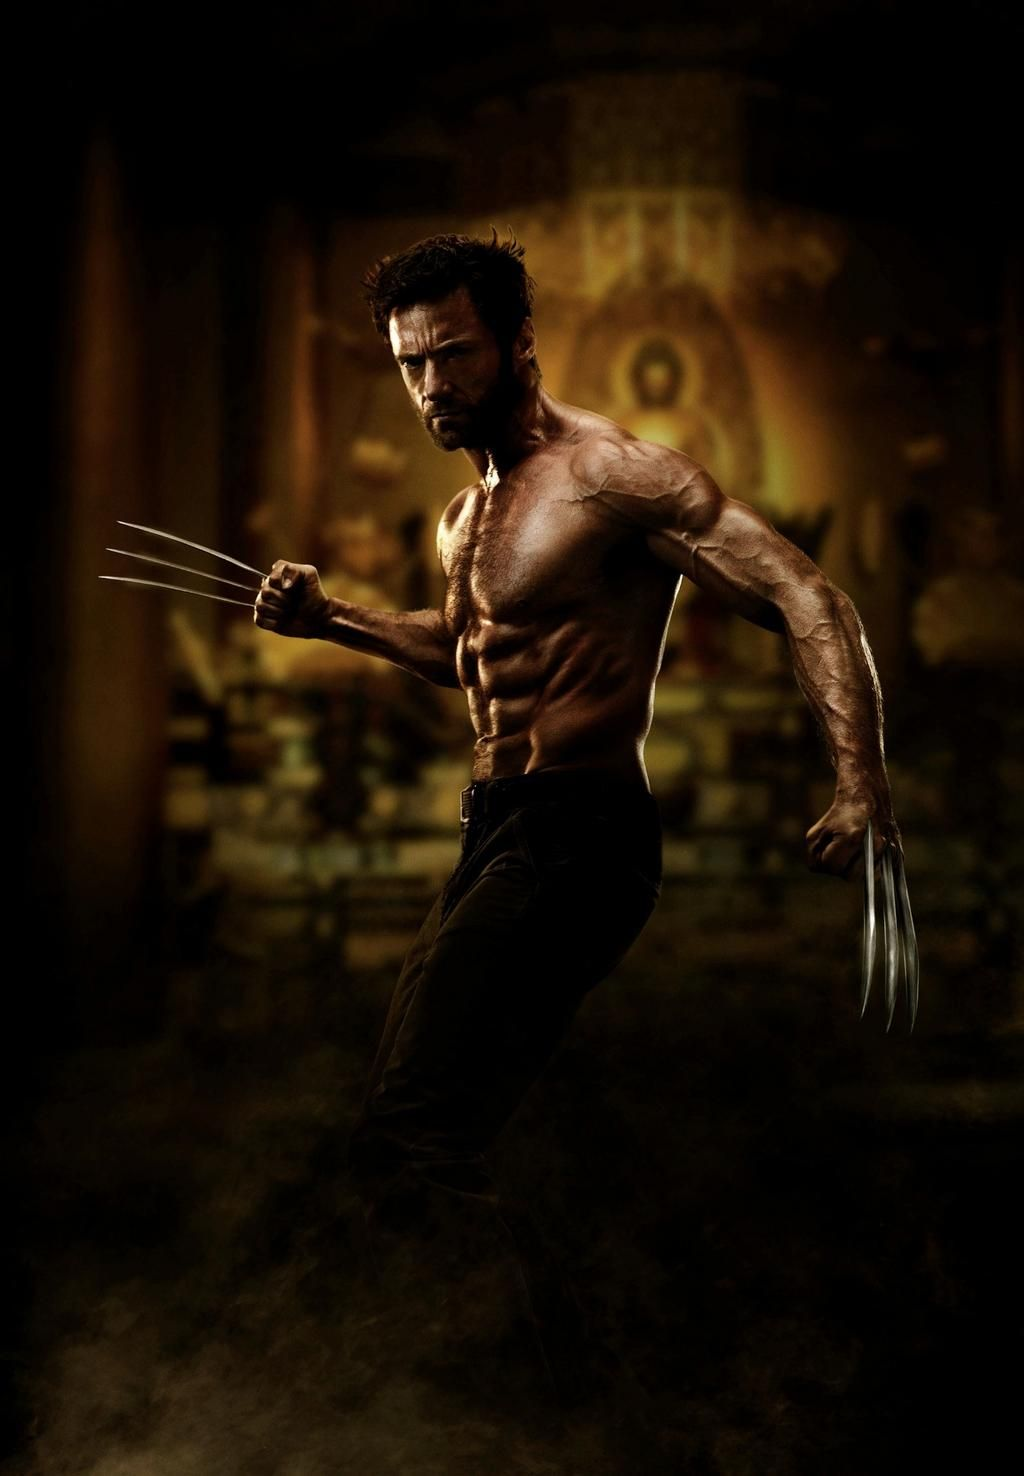 wolverine 3 filming begins; r-rating confirmed | collider